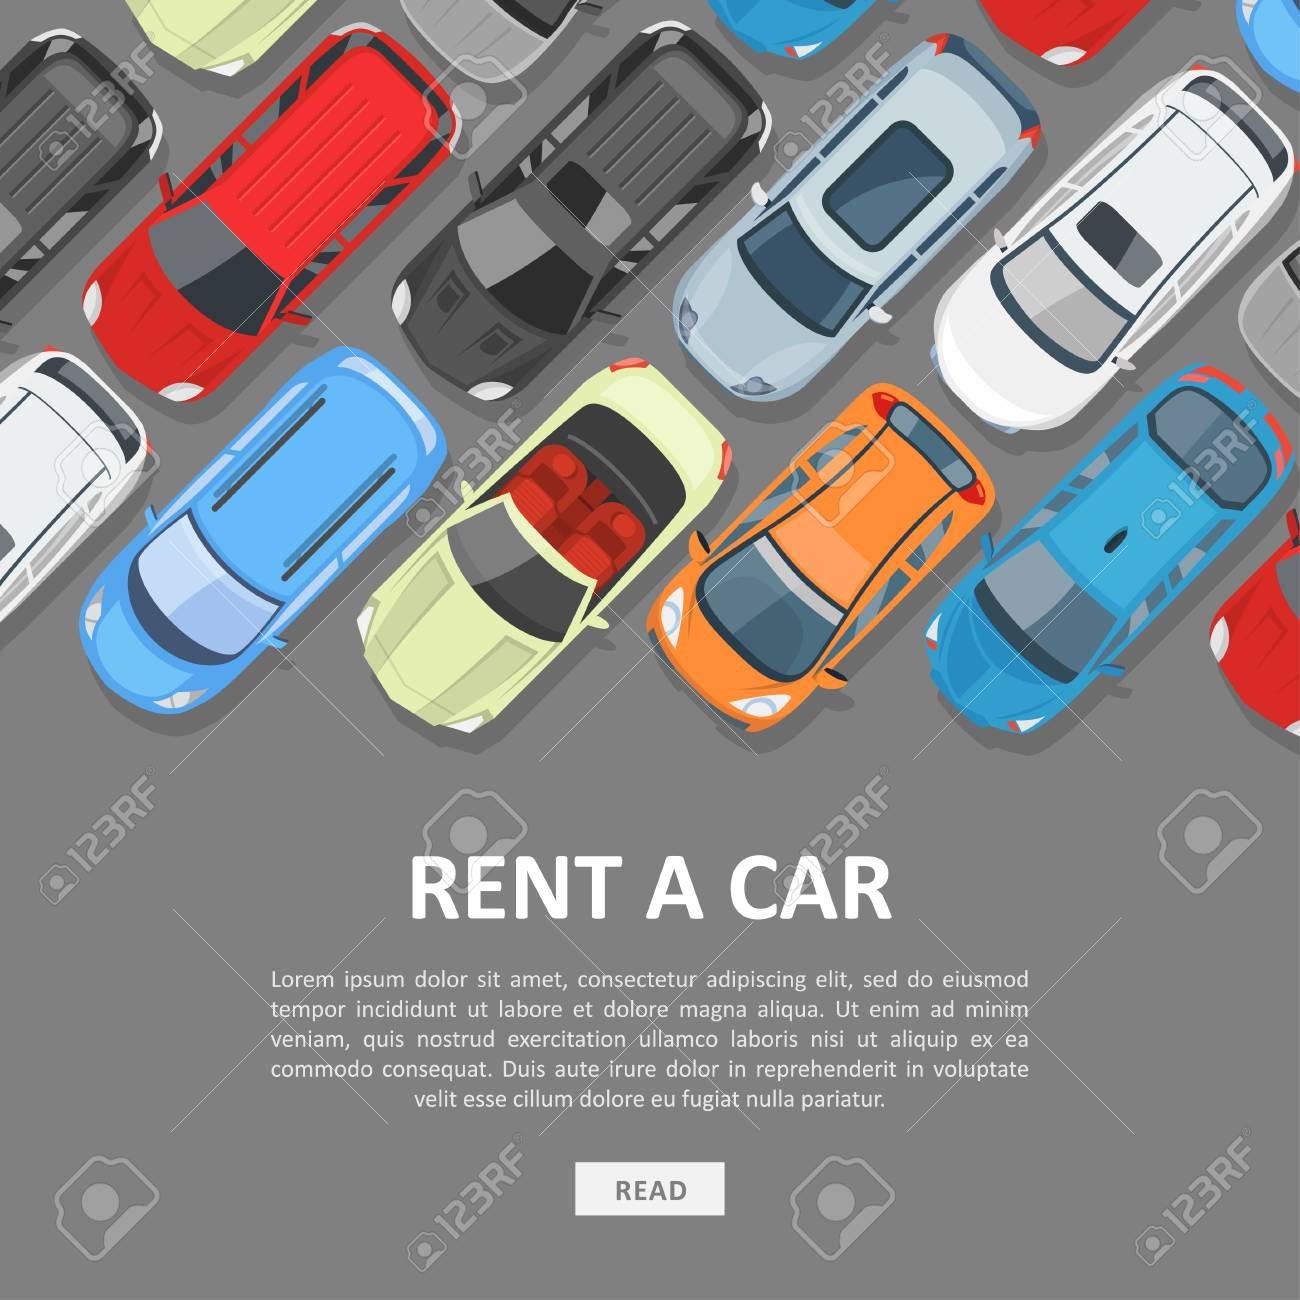 Rent A Car Template Best Selection And Price On Rental Cars